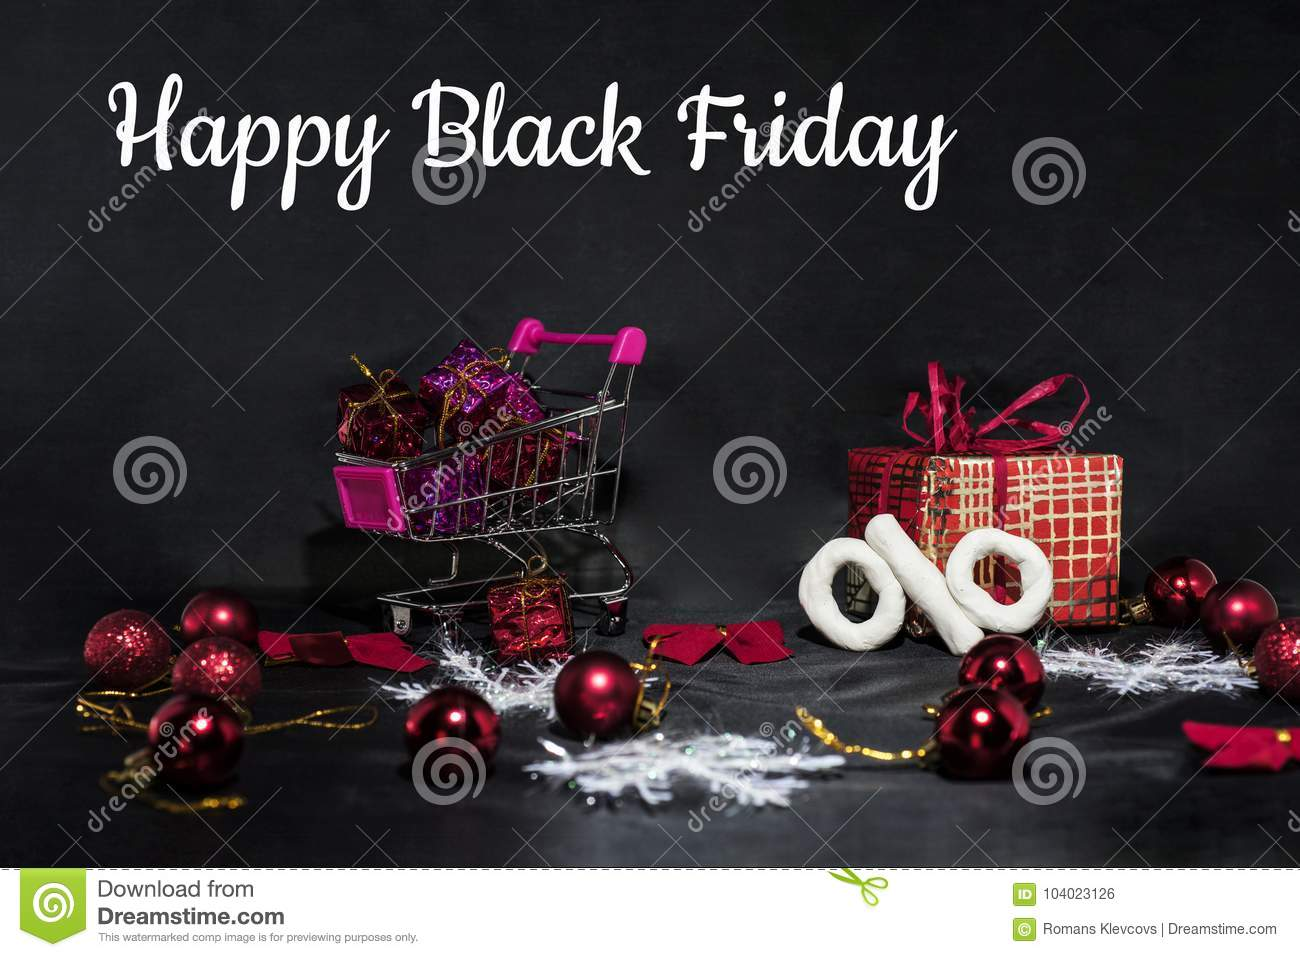 Black Friday Abstract Photo Happy Merry Christmas Stock Photo Image Of Design Header 104023126